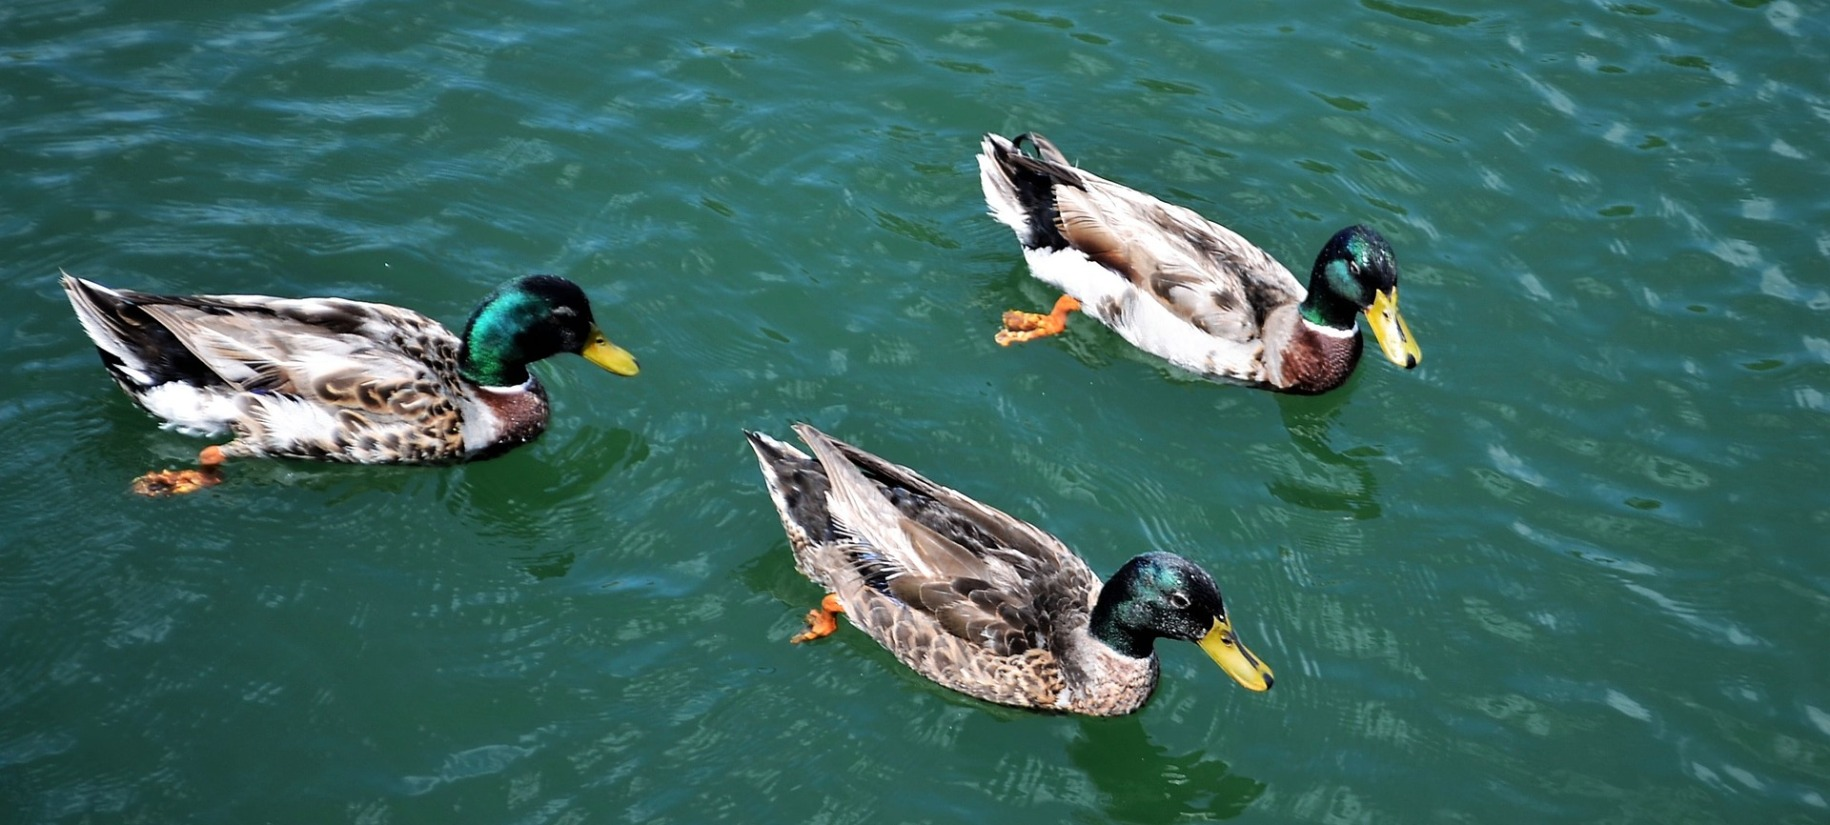 three ducks in a pond